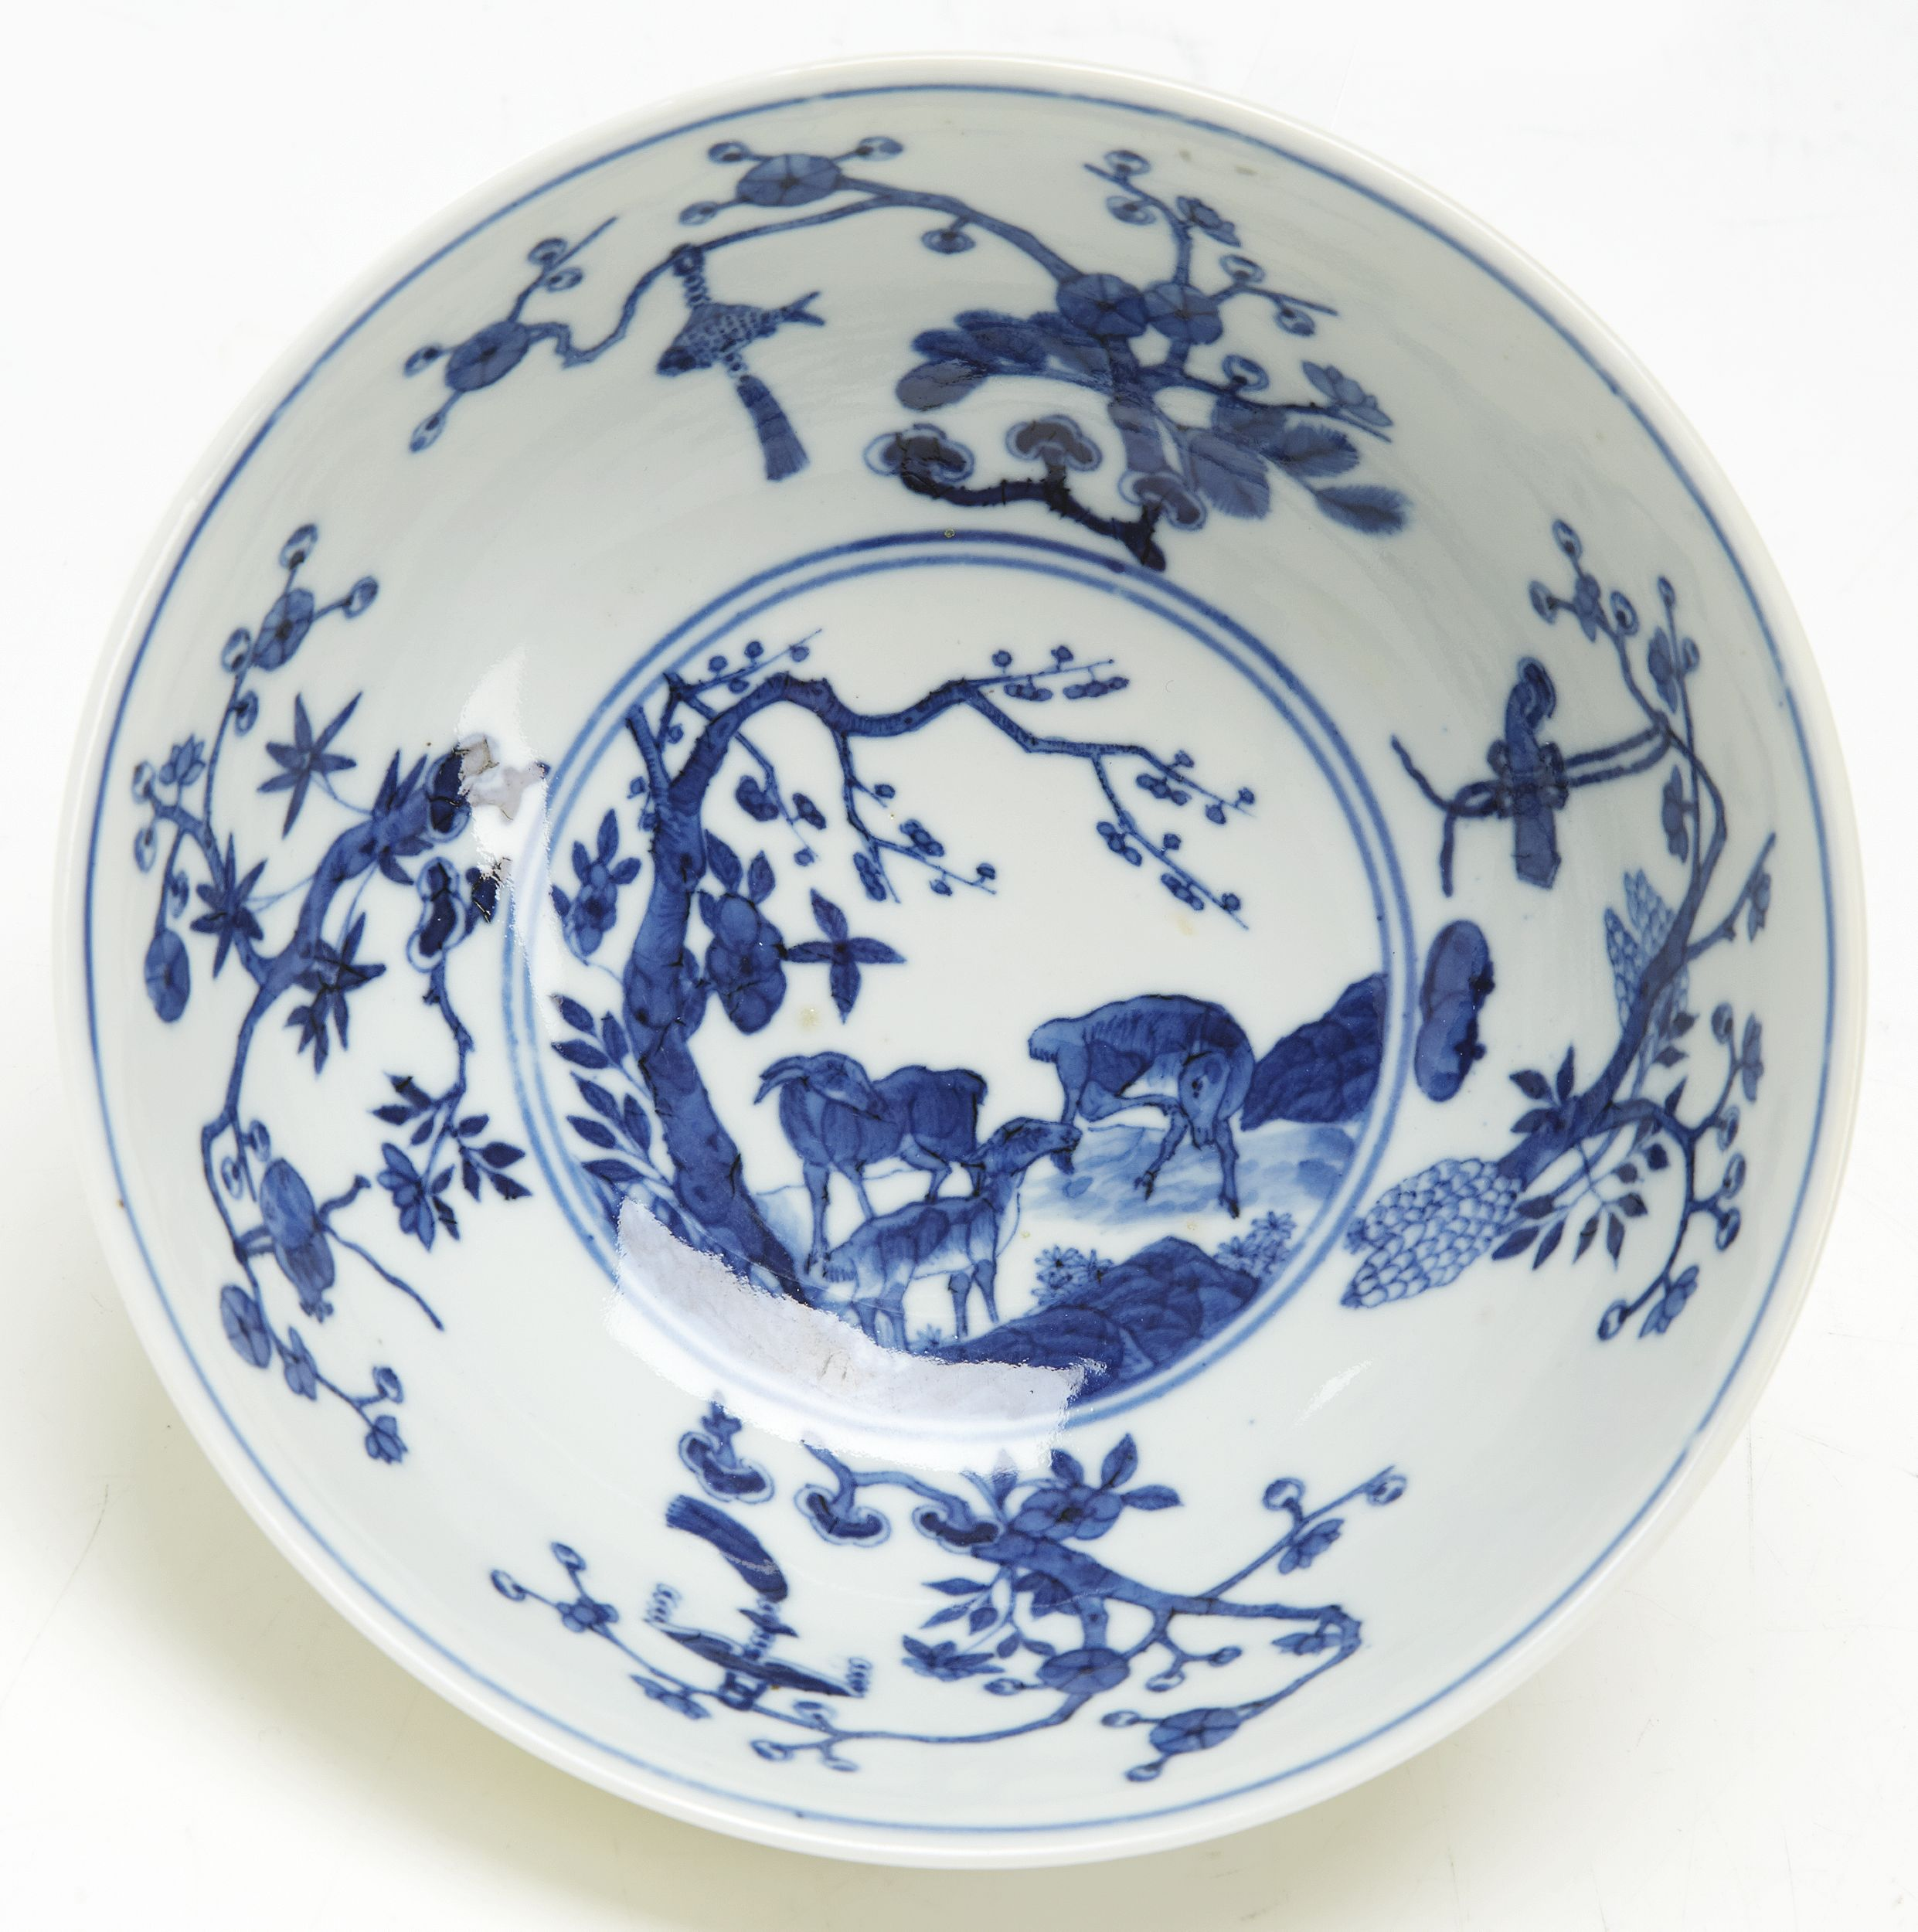 A Pair of Famille Rose Sgraffito Bowls